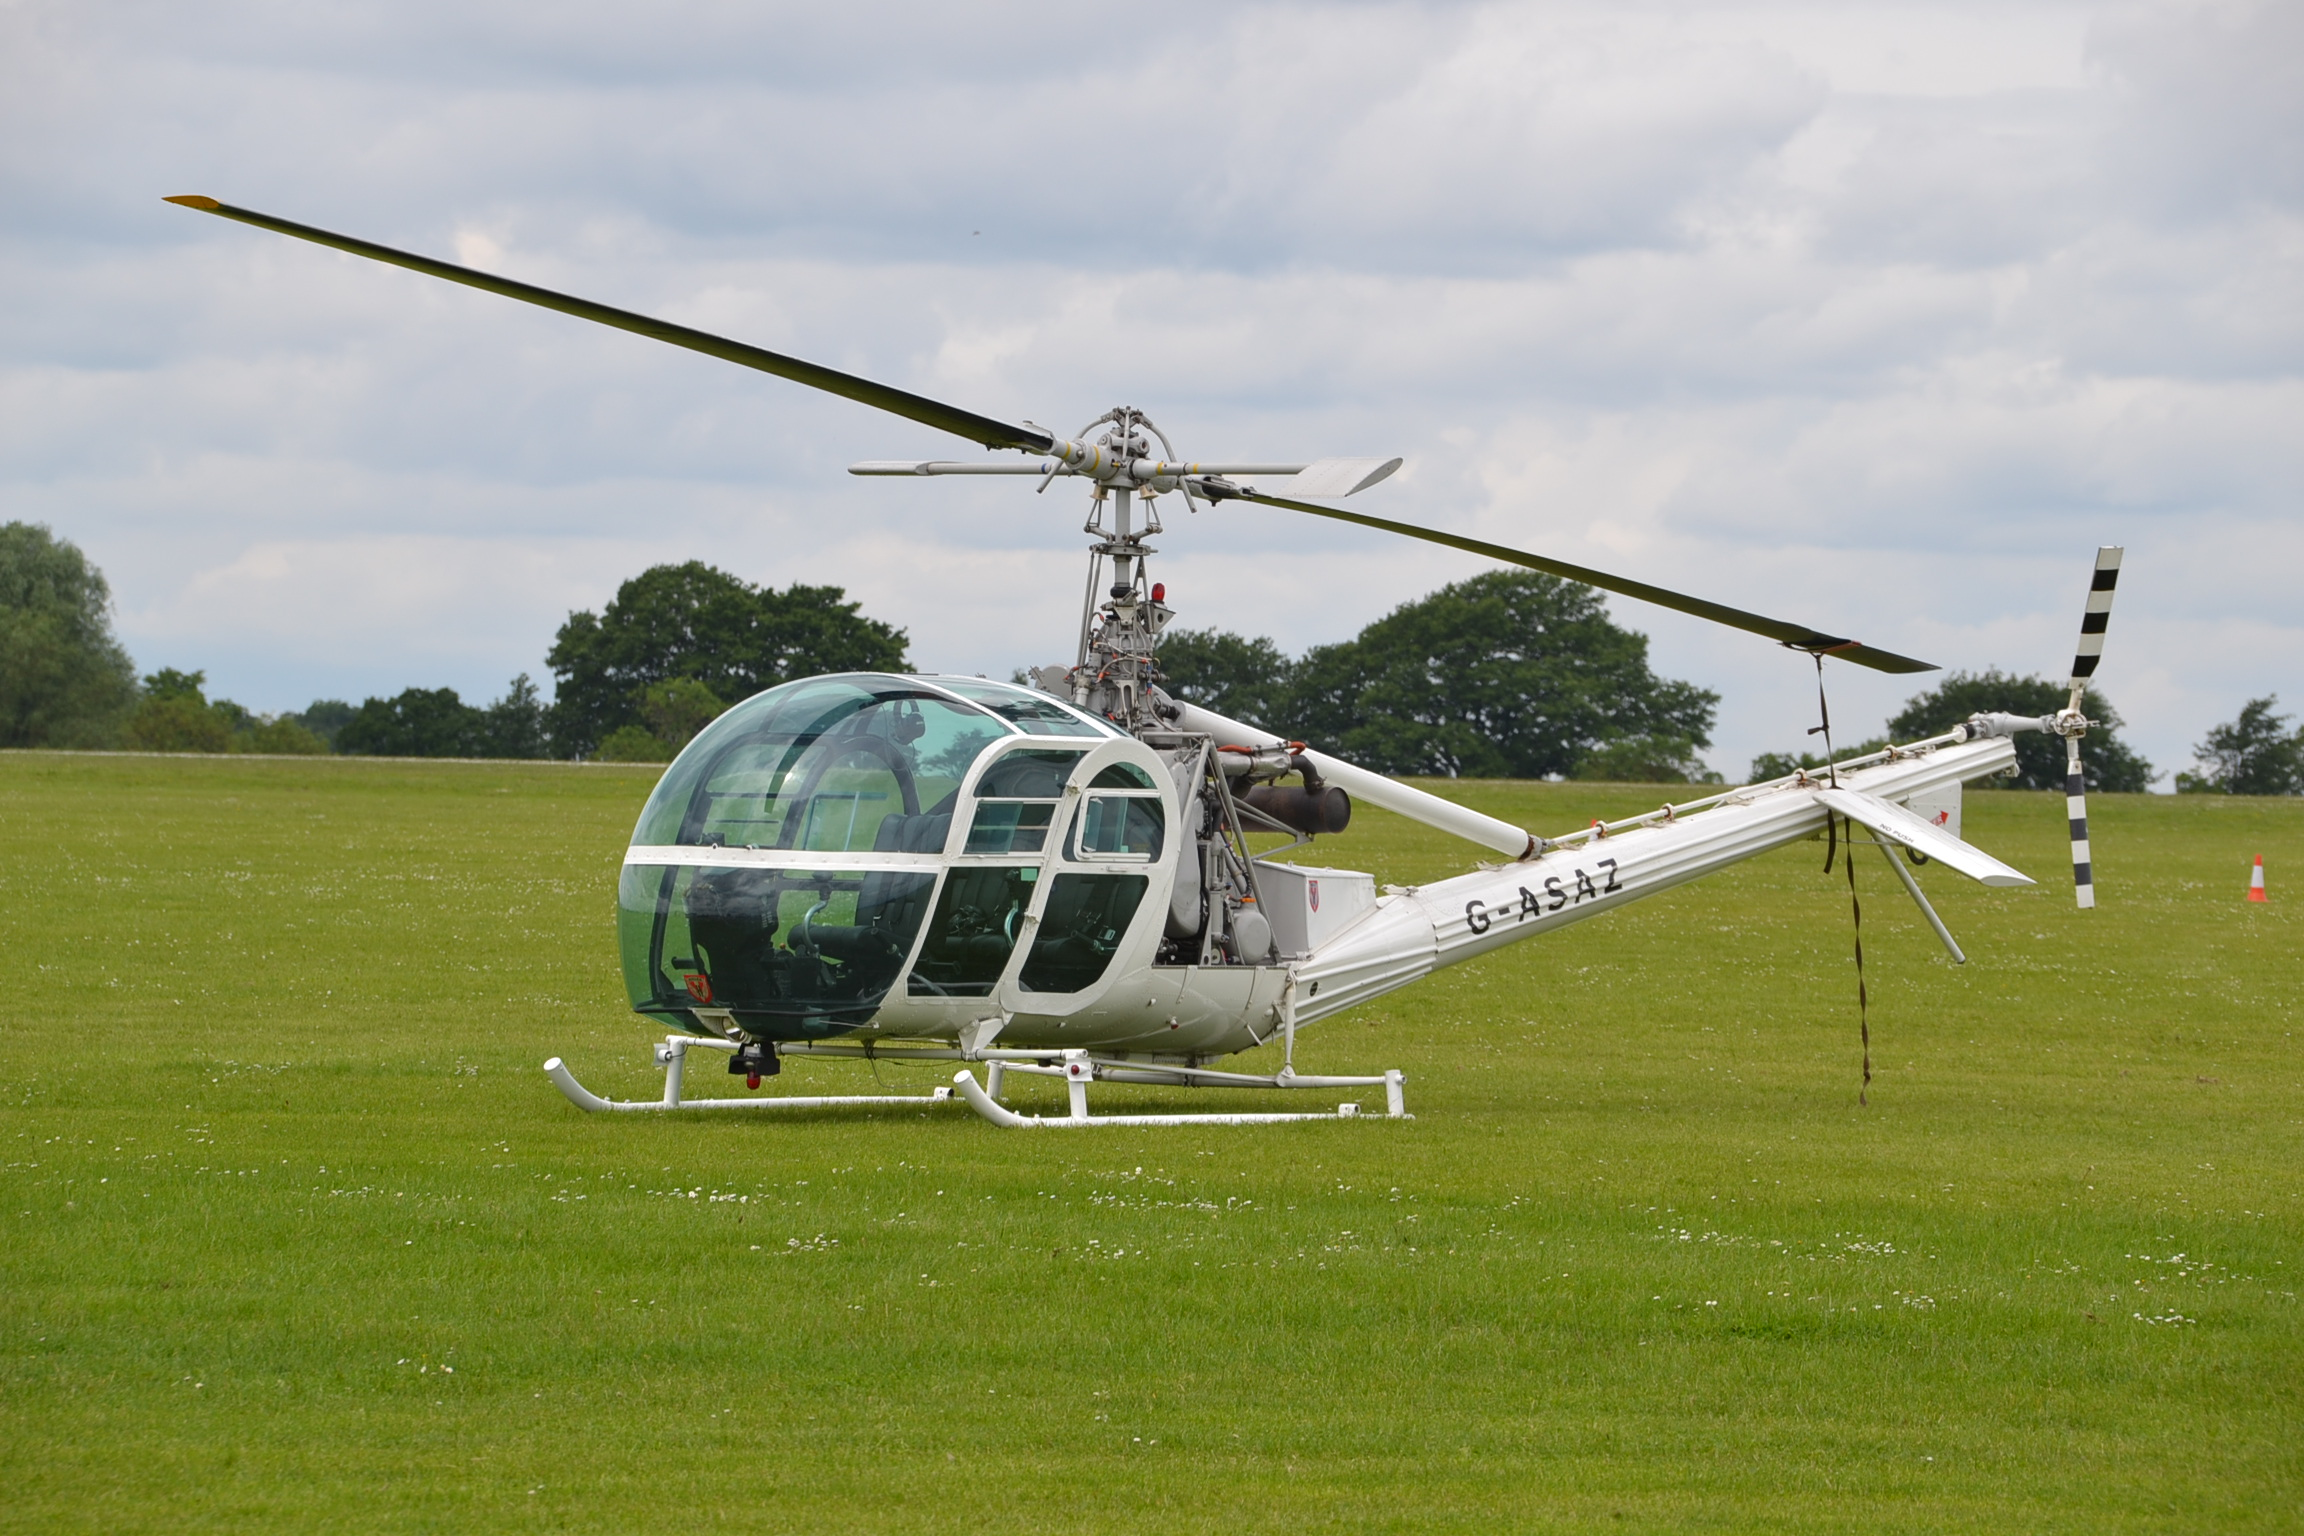 AIRSHOW NEWS: Old Buckenham Airshow reunites two stars of Goldfinger after 50 years